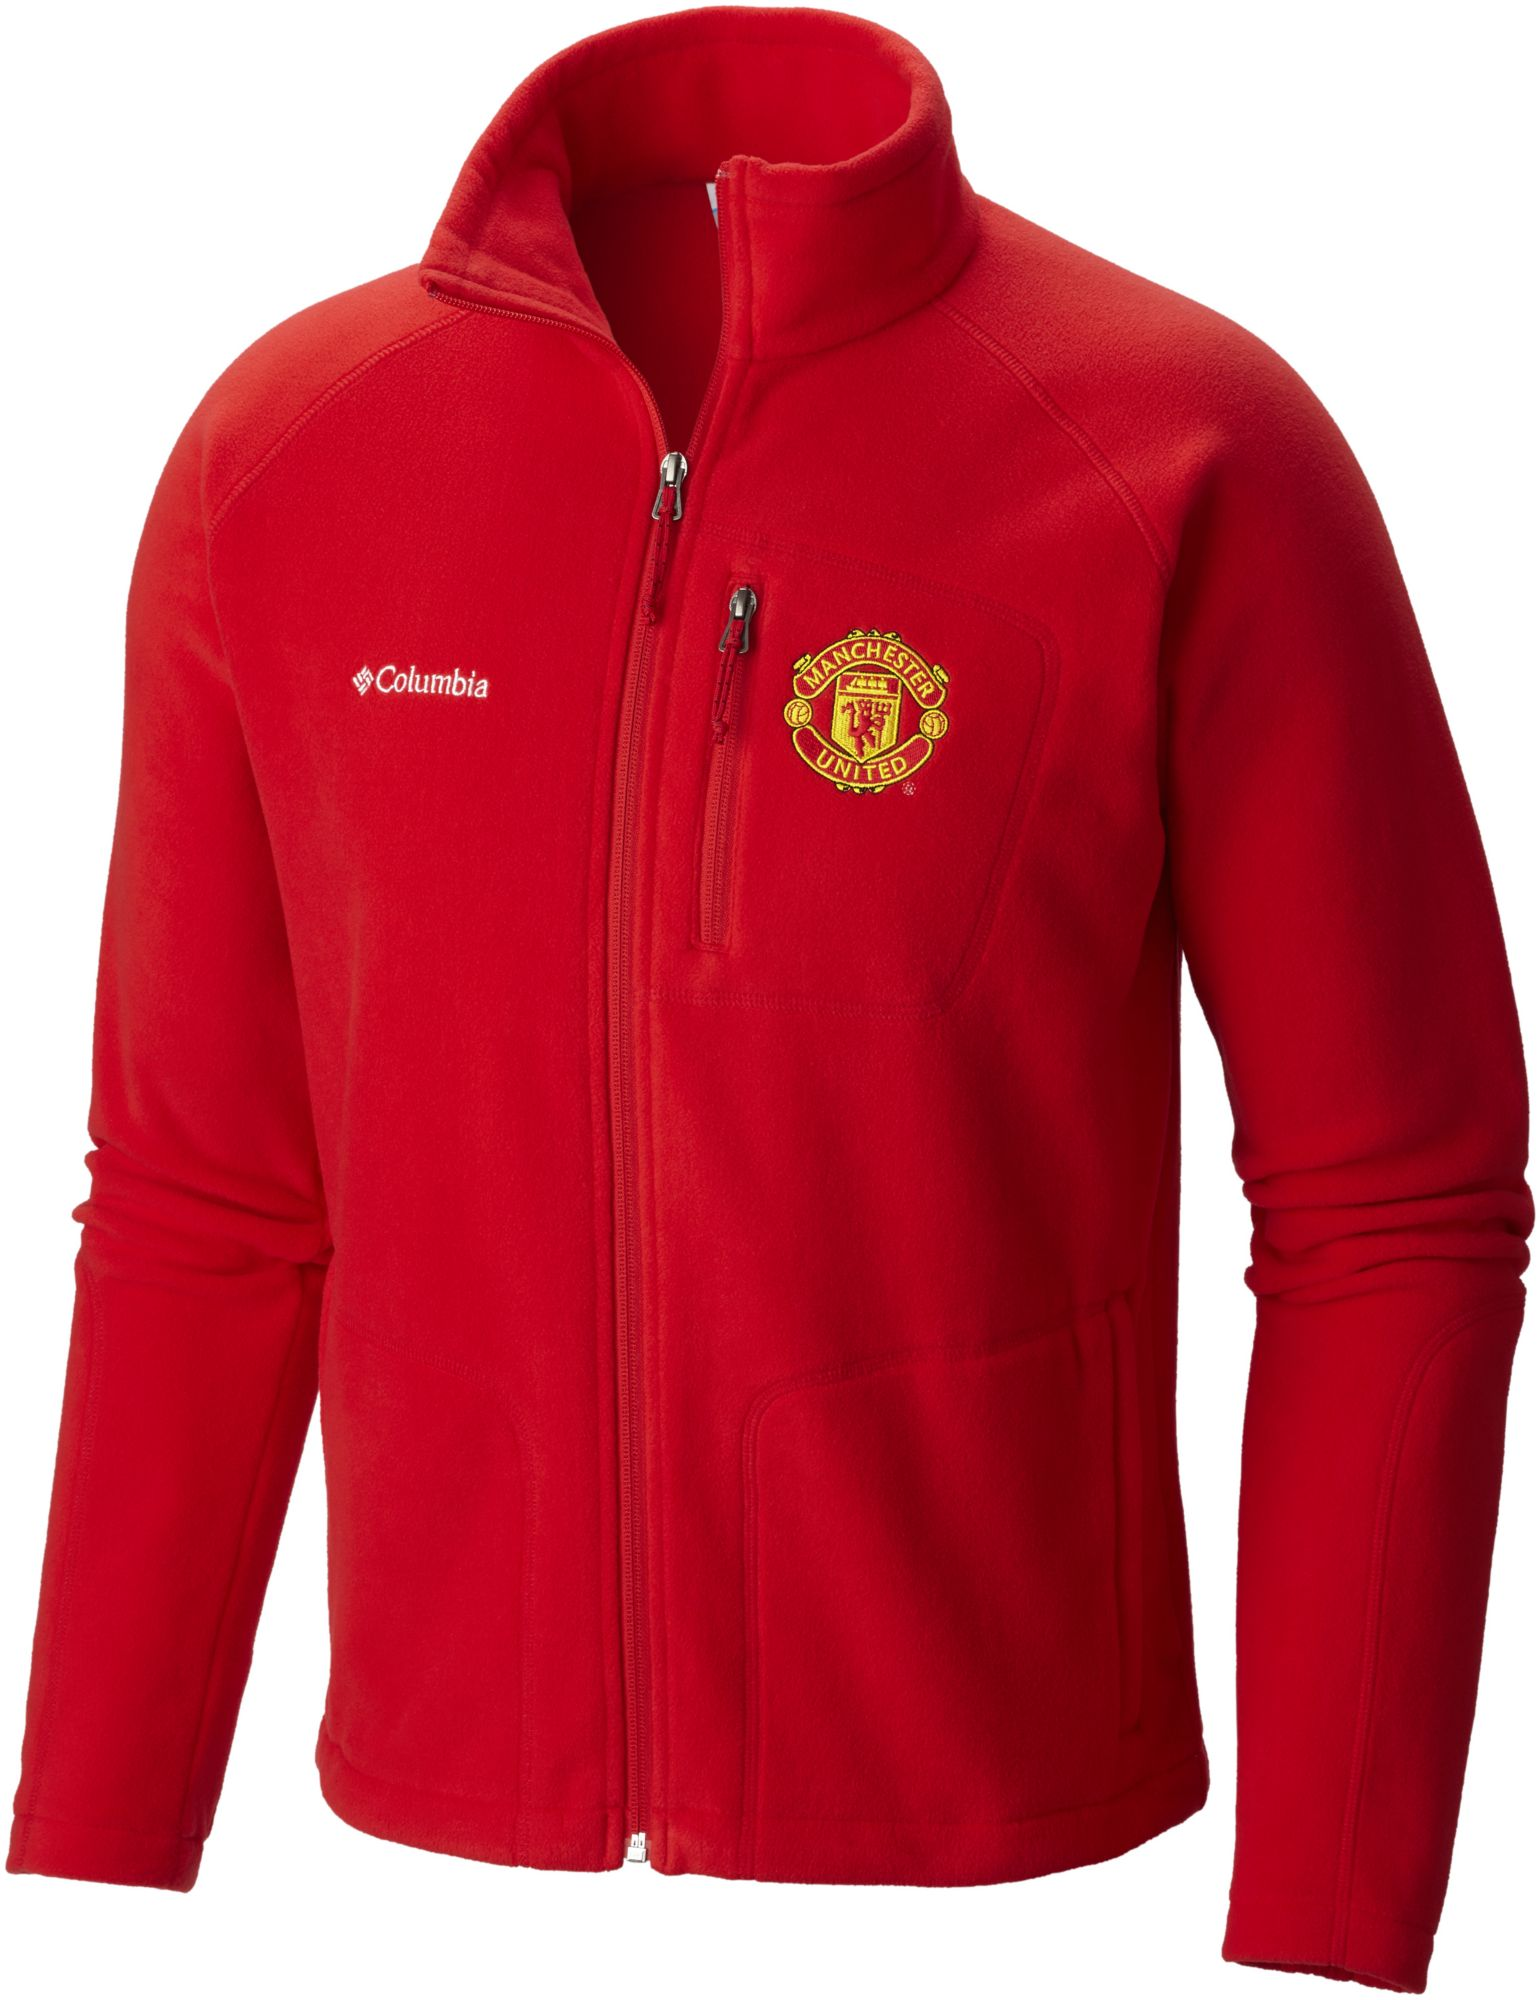 Columbia Men's Manchester United Fast Trek Red Full-Zip Fleece ...